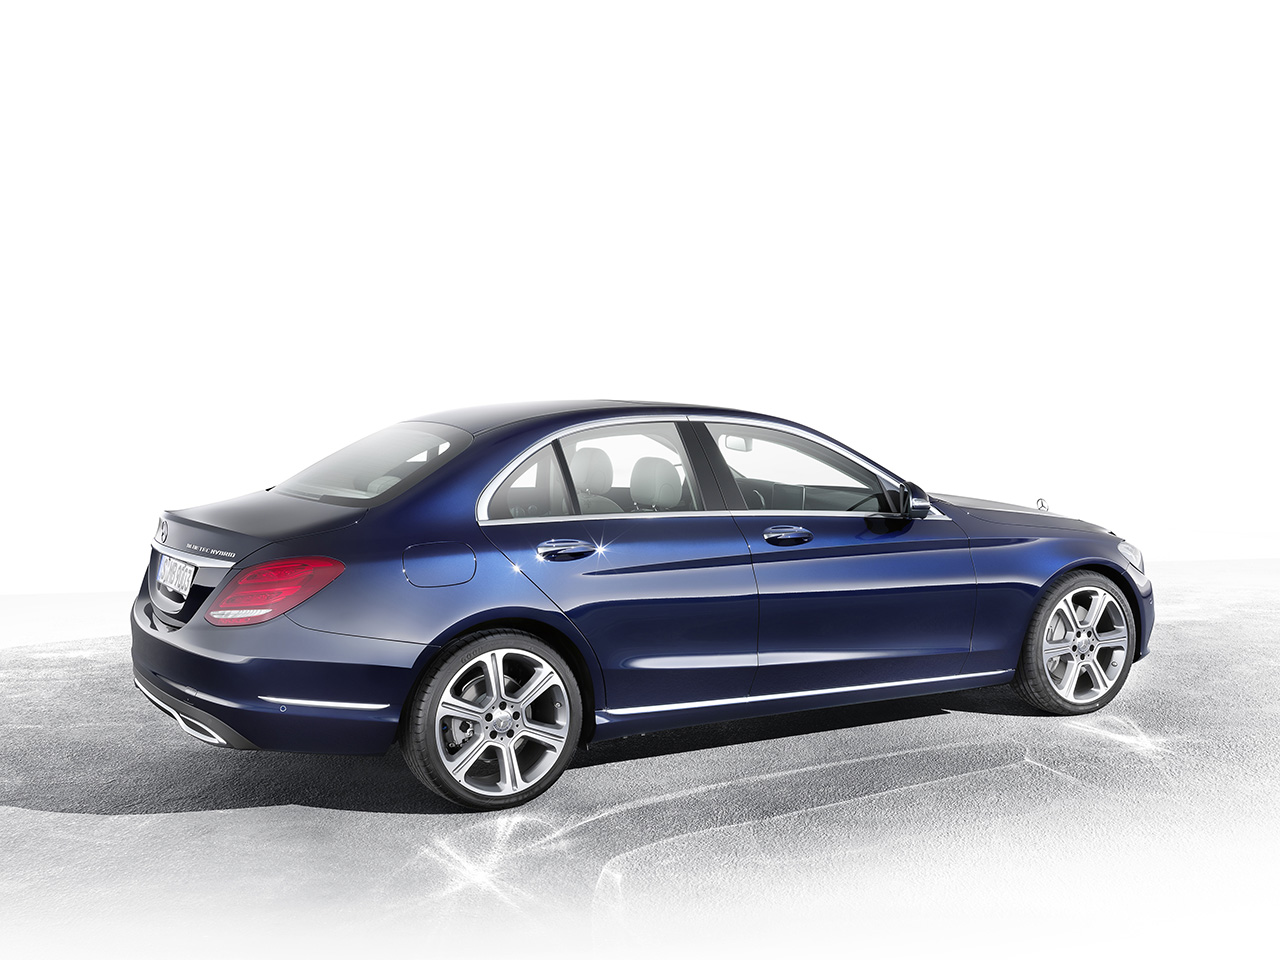 Mercedes Benz C 300 Bluetec Hybrid Exclusive Line Cavansitblau 25 on mb cls63 amg s coupe 2014